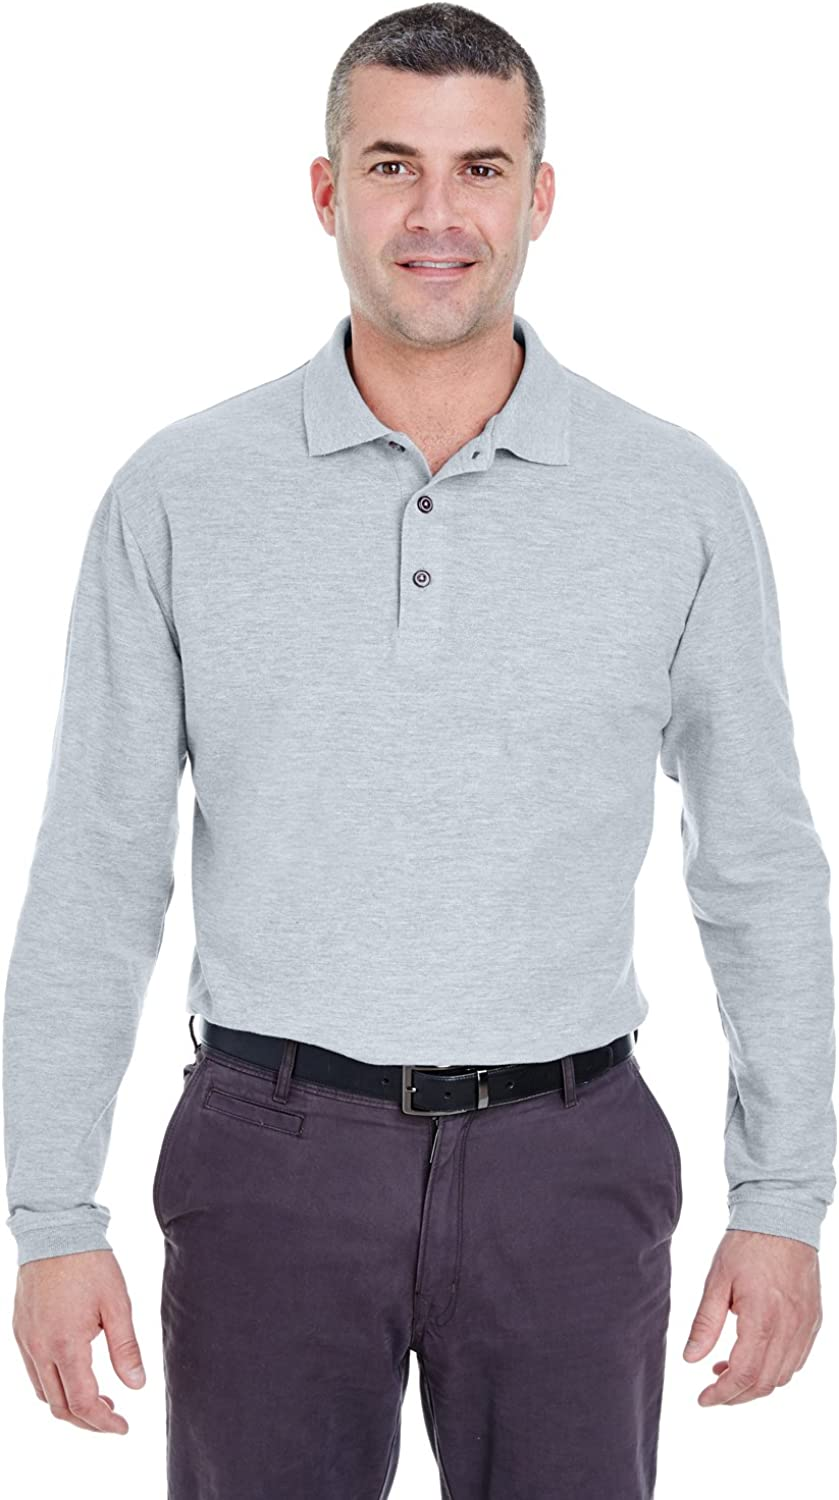 UltraClubMen's Relaxed Fitted Long Sleeve Pique Knit Polo Shirt